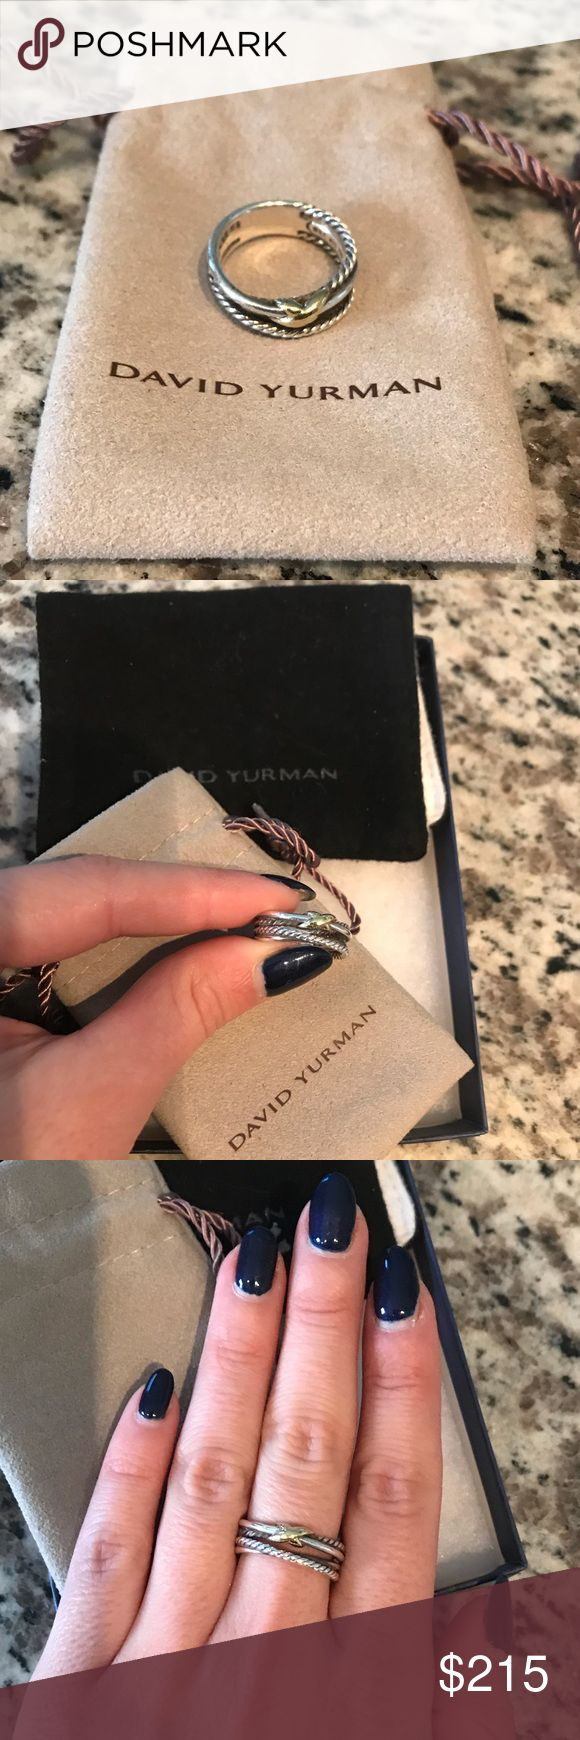 David Yurman ring David Yurman X-crossover ring. Excellent condition. Comes with cleaning cloth and pouch. Sterling silver and 18-karat yellow gold. 6mm wide. Great everyday piece. Size 6. Thicker band so may fit snuggly but measured and purchased sz 6. David Yurman Jewelry Rings